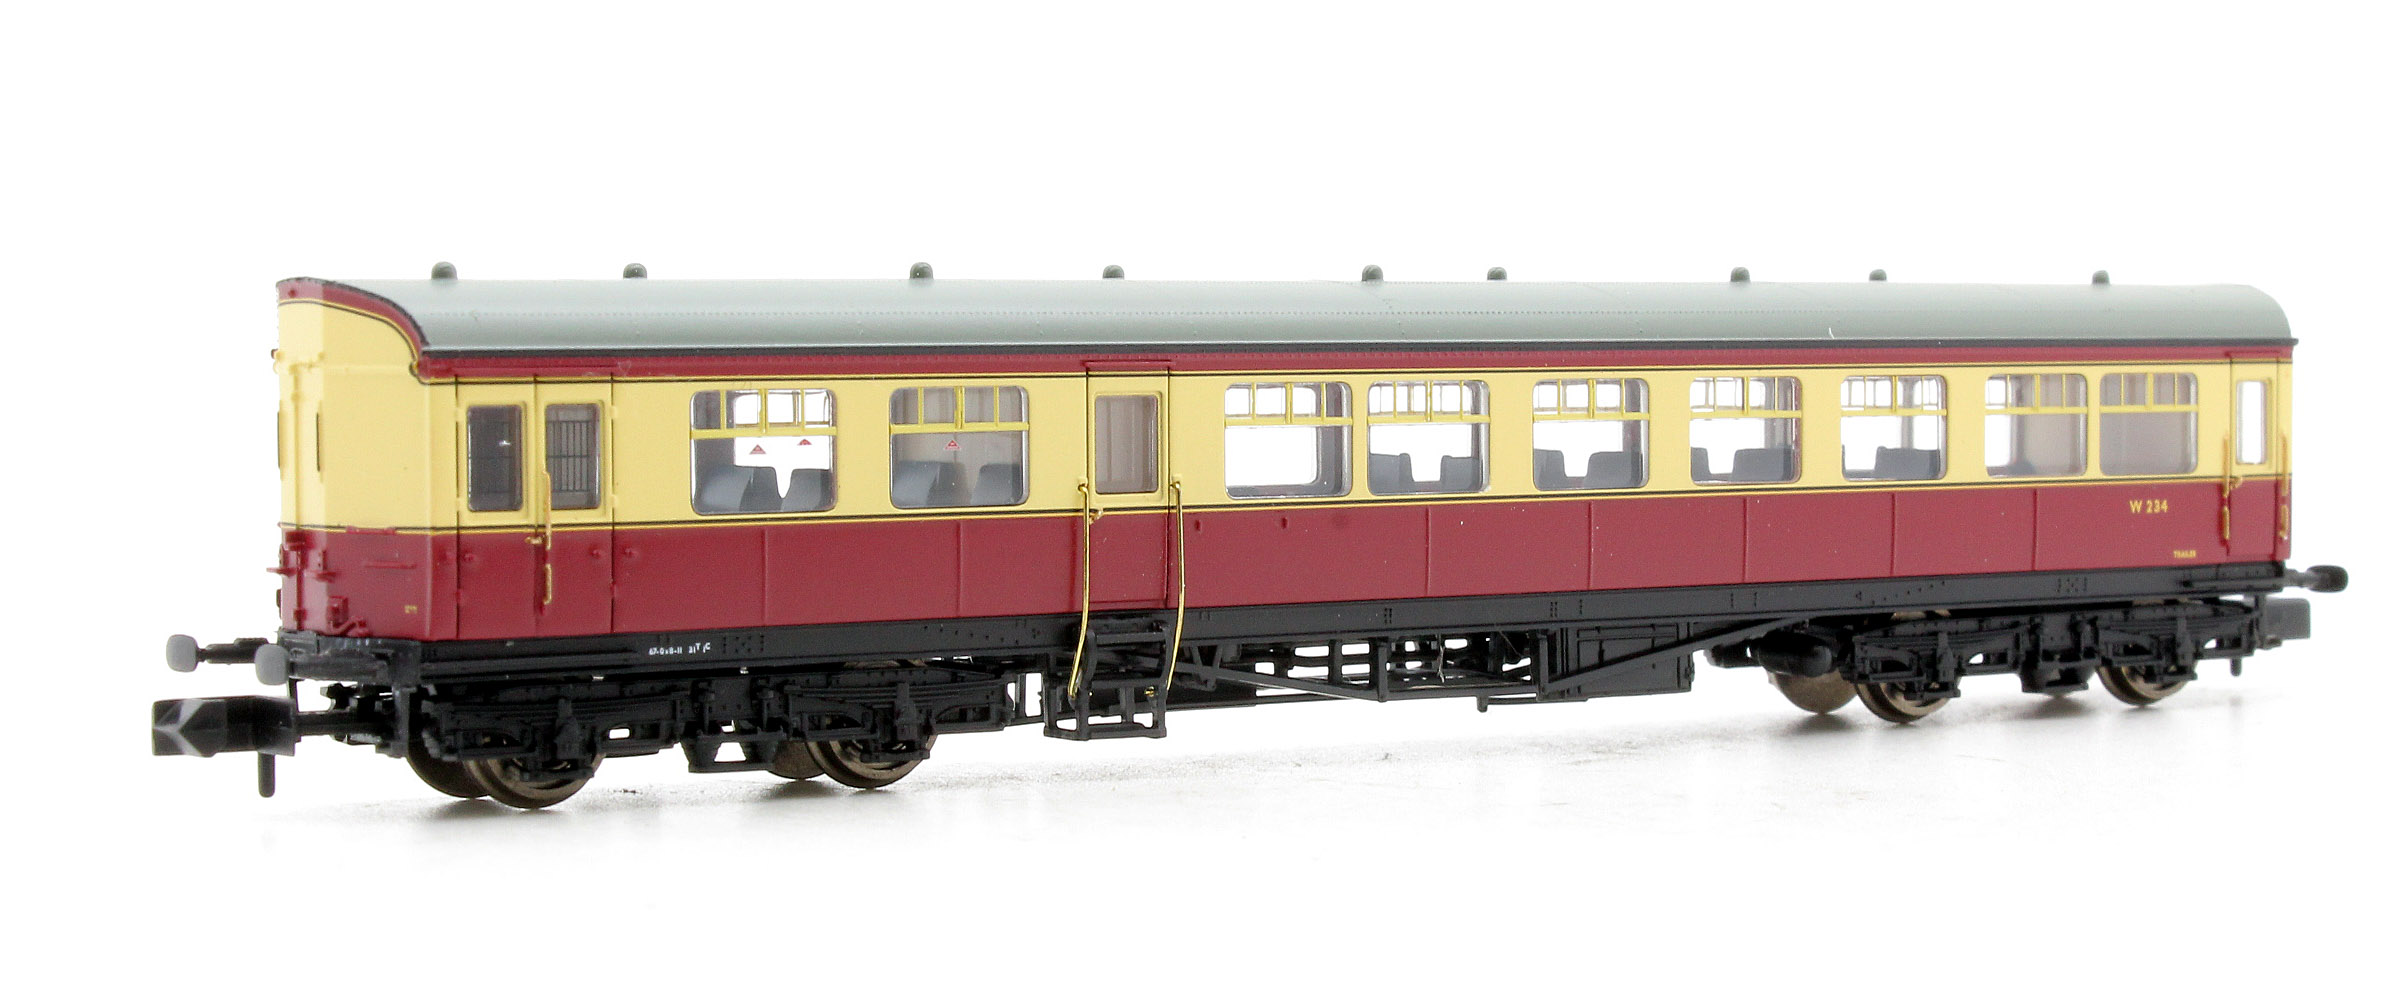 Model Railways & Trains 374-610 Graham Farish N Gauge Auto Trailer Br Crimson & Cream Weathered